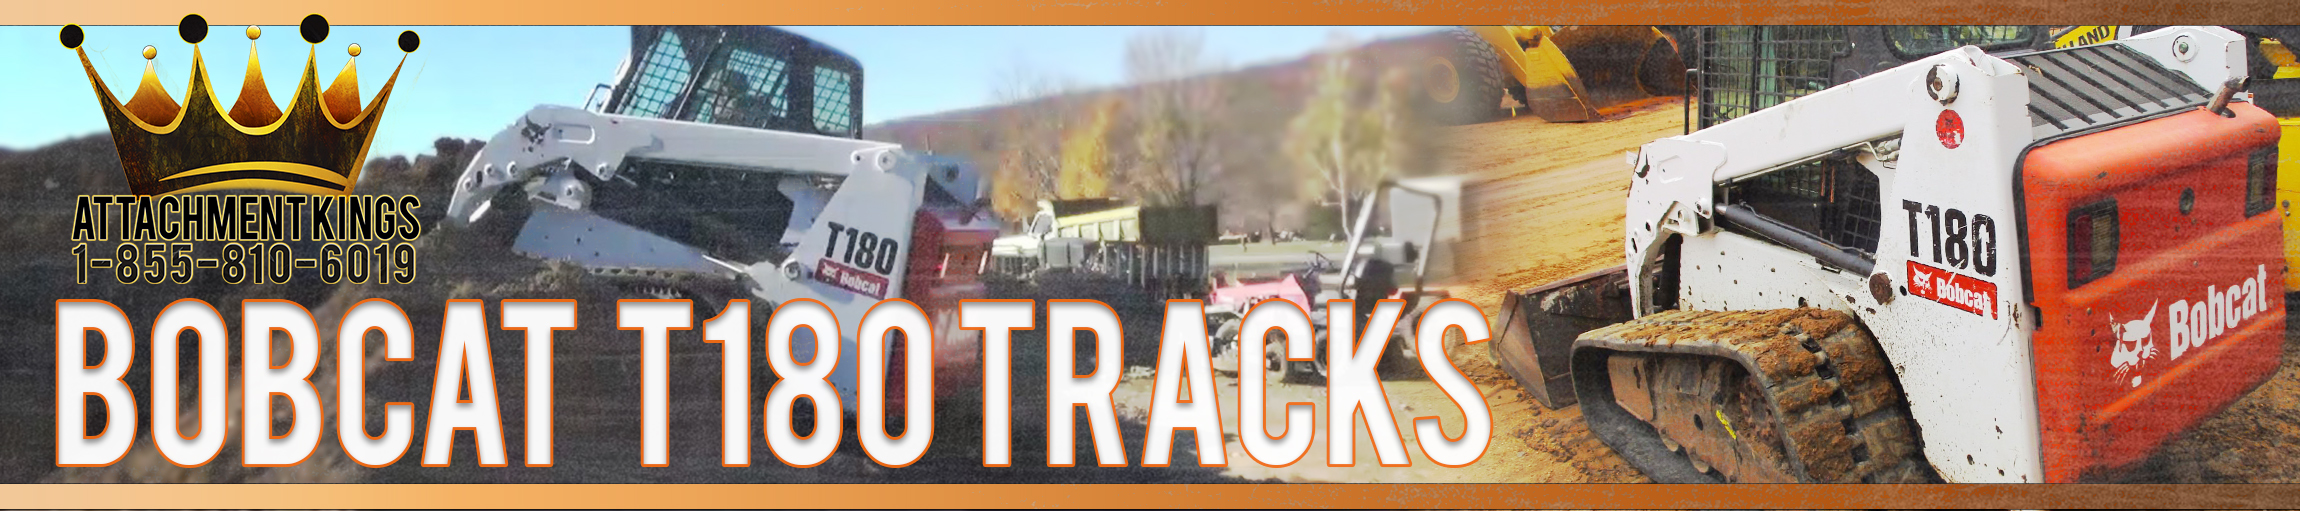 Replacement Tracks for Bobcat T180